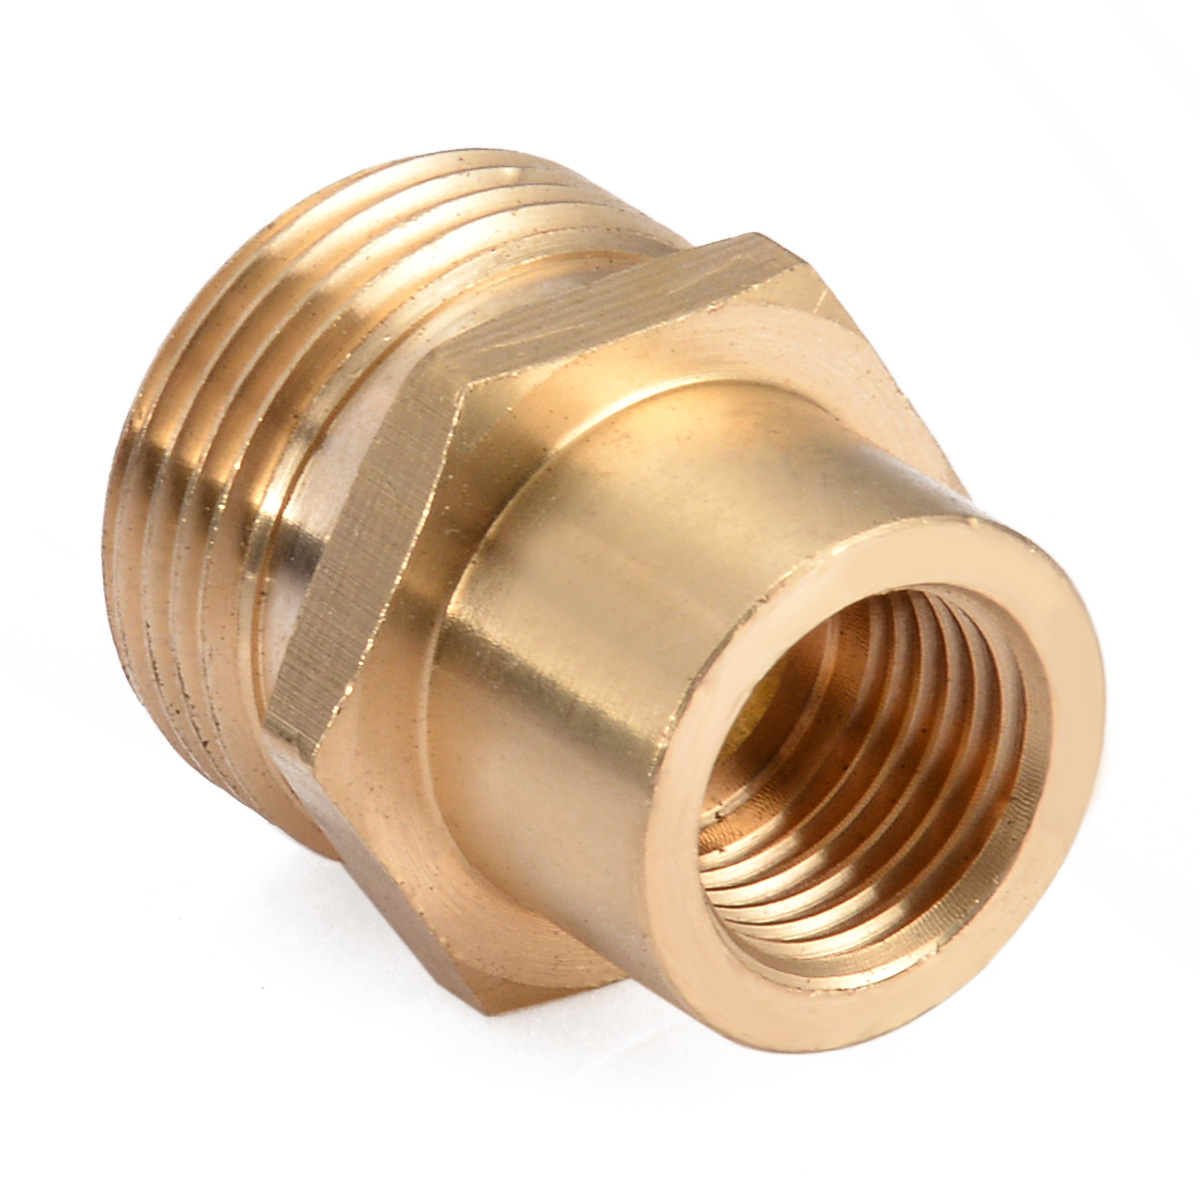 New Brass Joint Nozzle Copper Washer Snow Foam Lance Adapter Coupler 1/4 Inch F - M22 For Spray Gun Fittings Water Tools